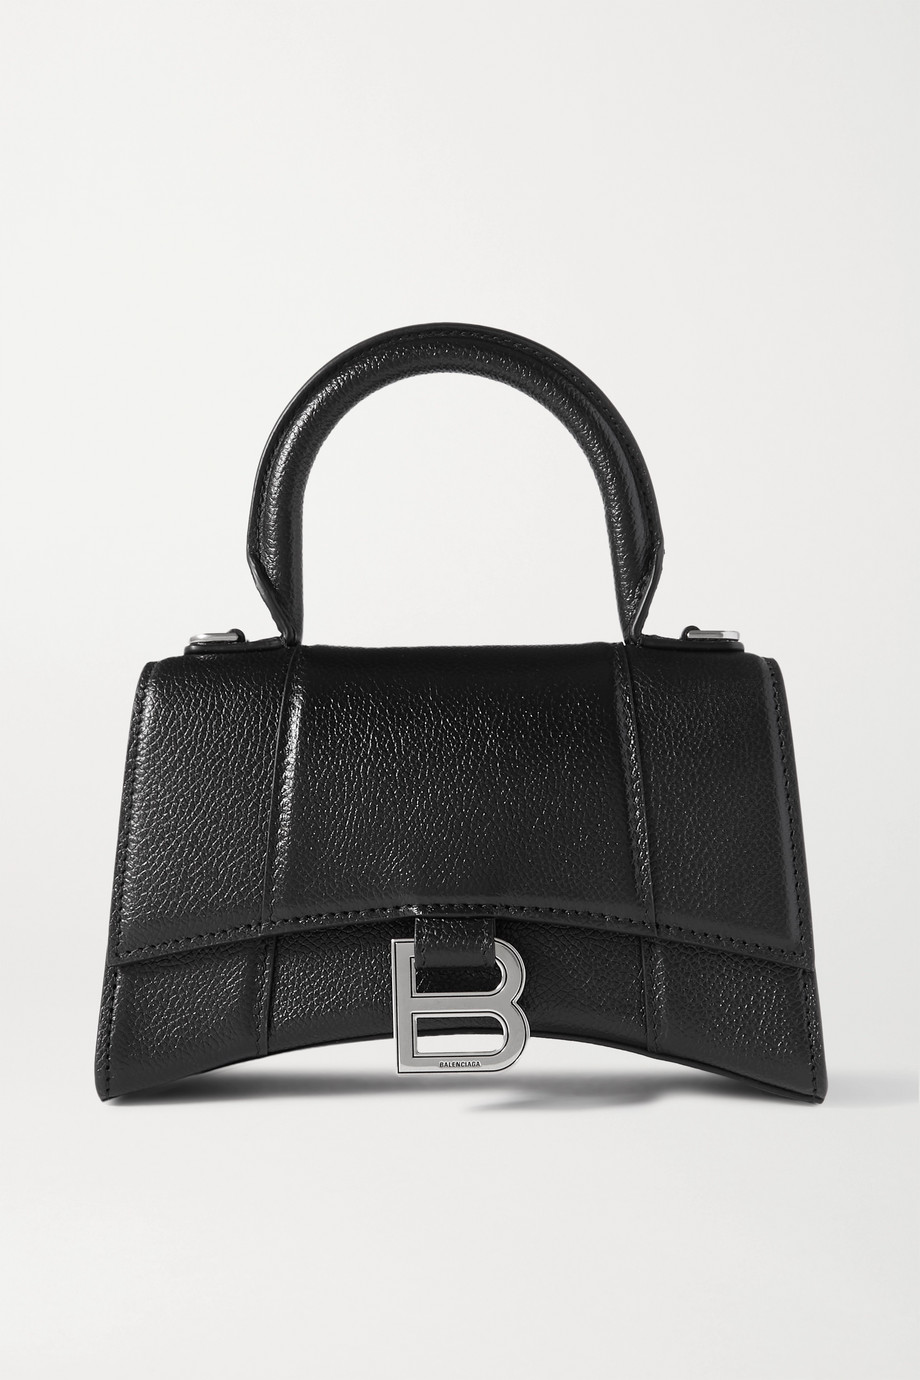 Balenciaga Hourglass XS textured-leather tote